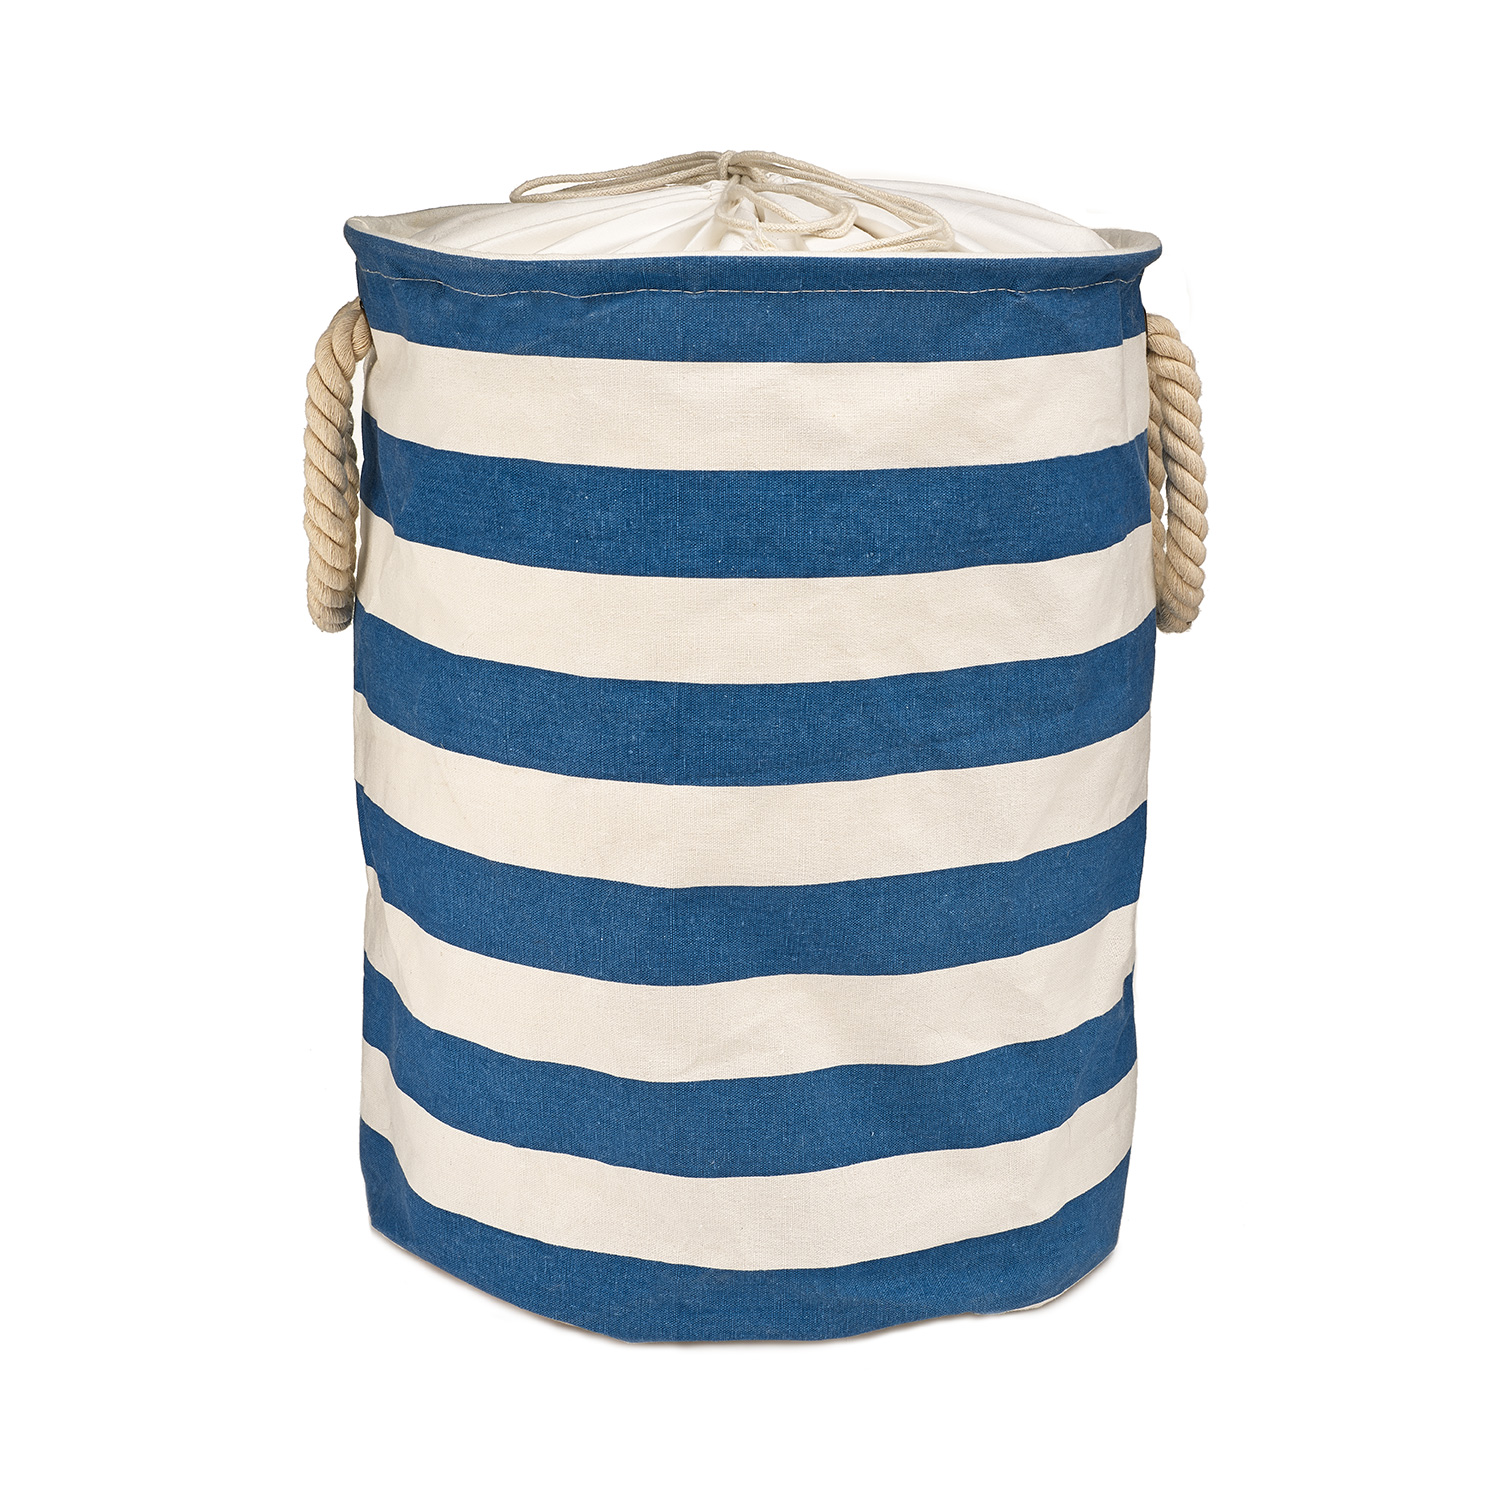 Collapsible Hamper Blue Striped Cotton Fabric Collapsible Kids Laundry Hamper